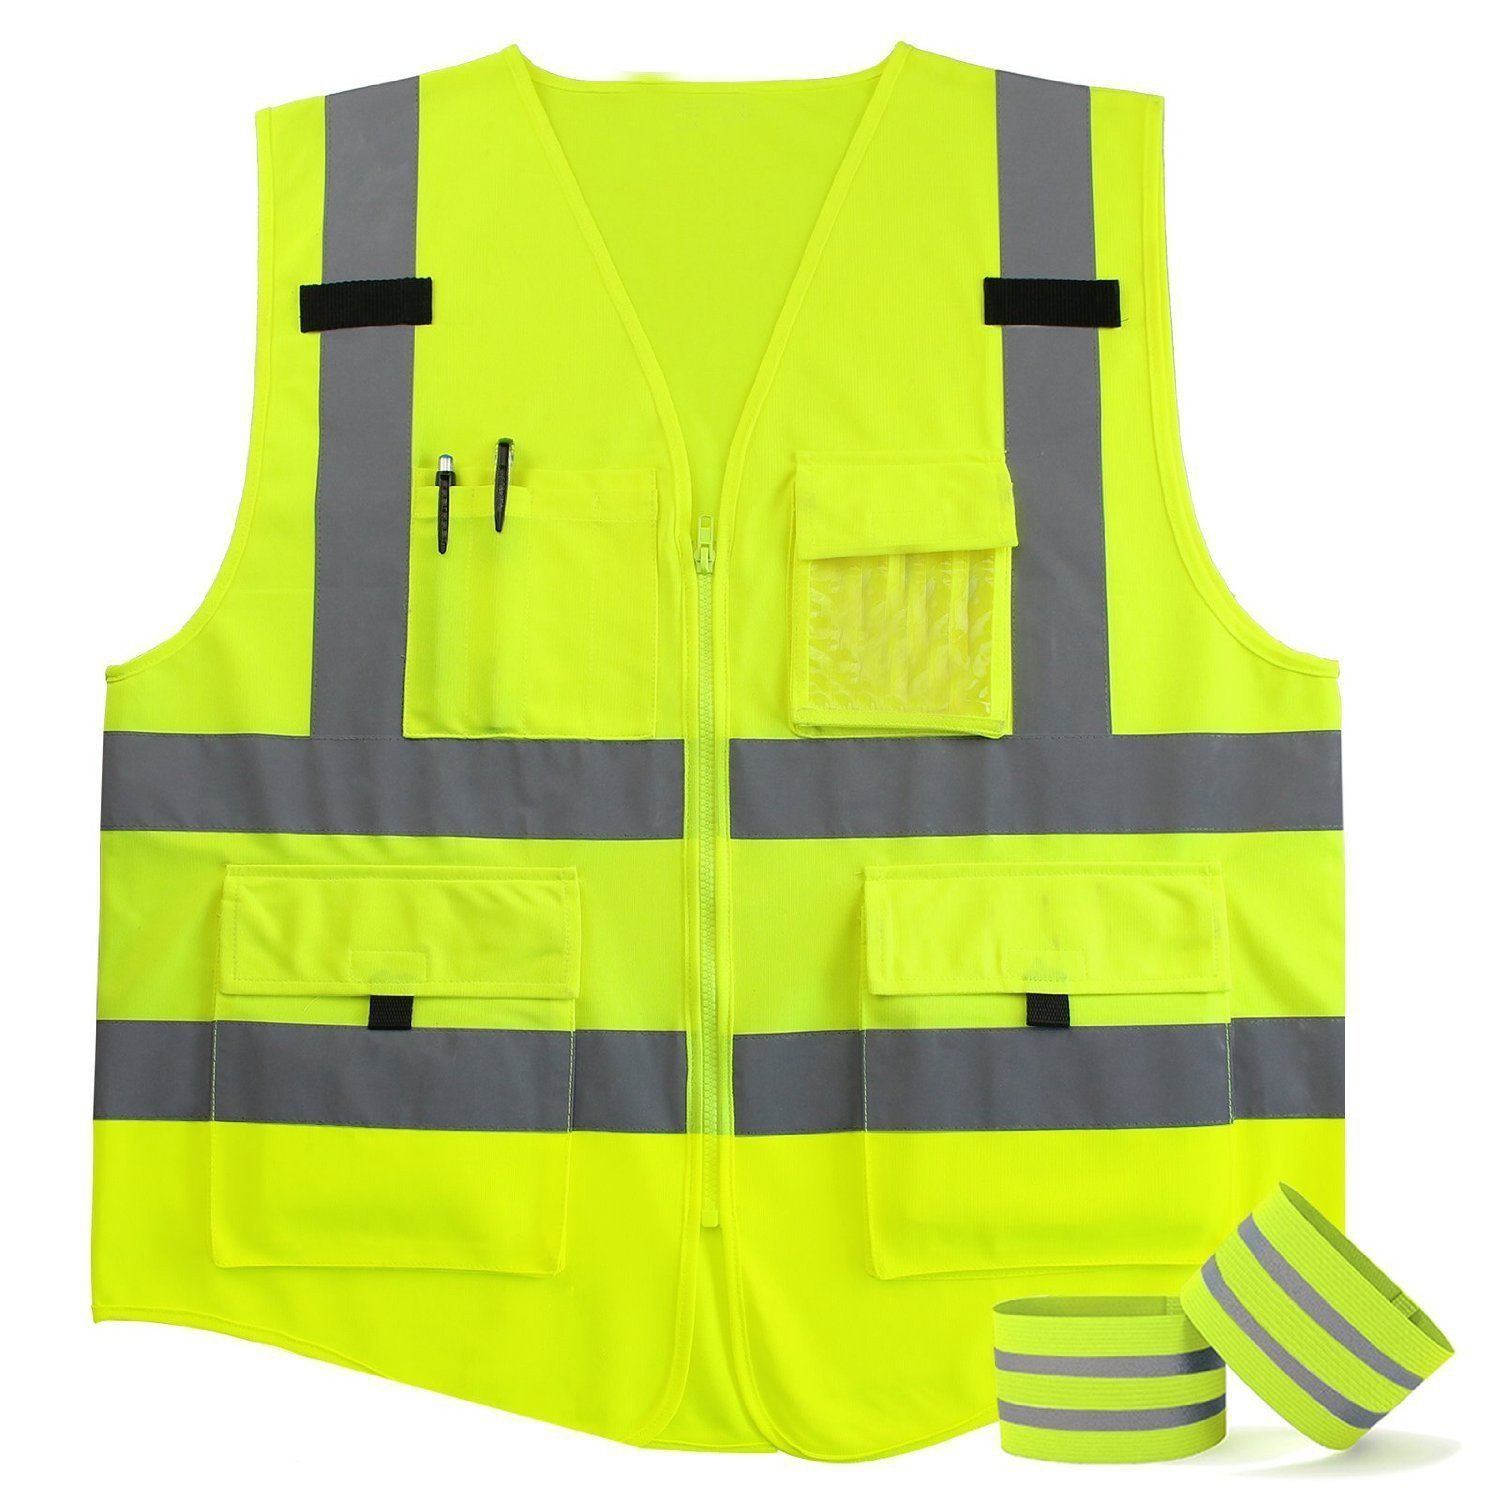 Queenbuygo High Visibility Safety Fluorescent Yellow Nylon Vest with 4 Pockets and Grade-2 Visibility Front Zipper and Reflective Strips on the back, 2 Bonus Reflective Bands Included (M)